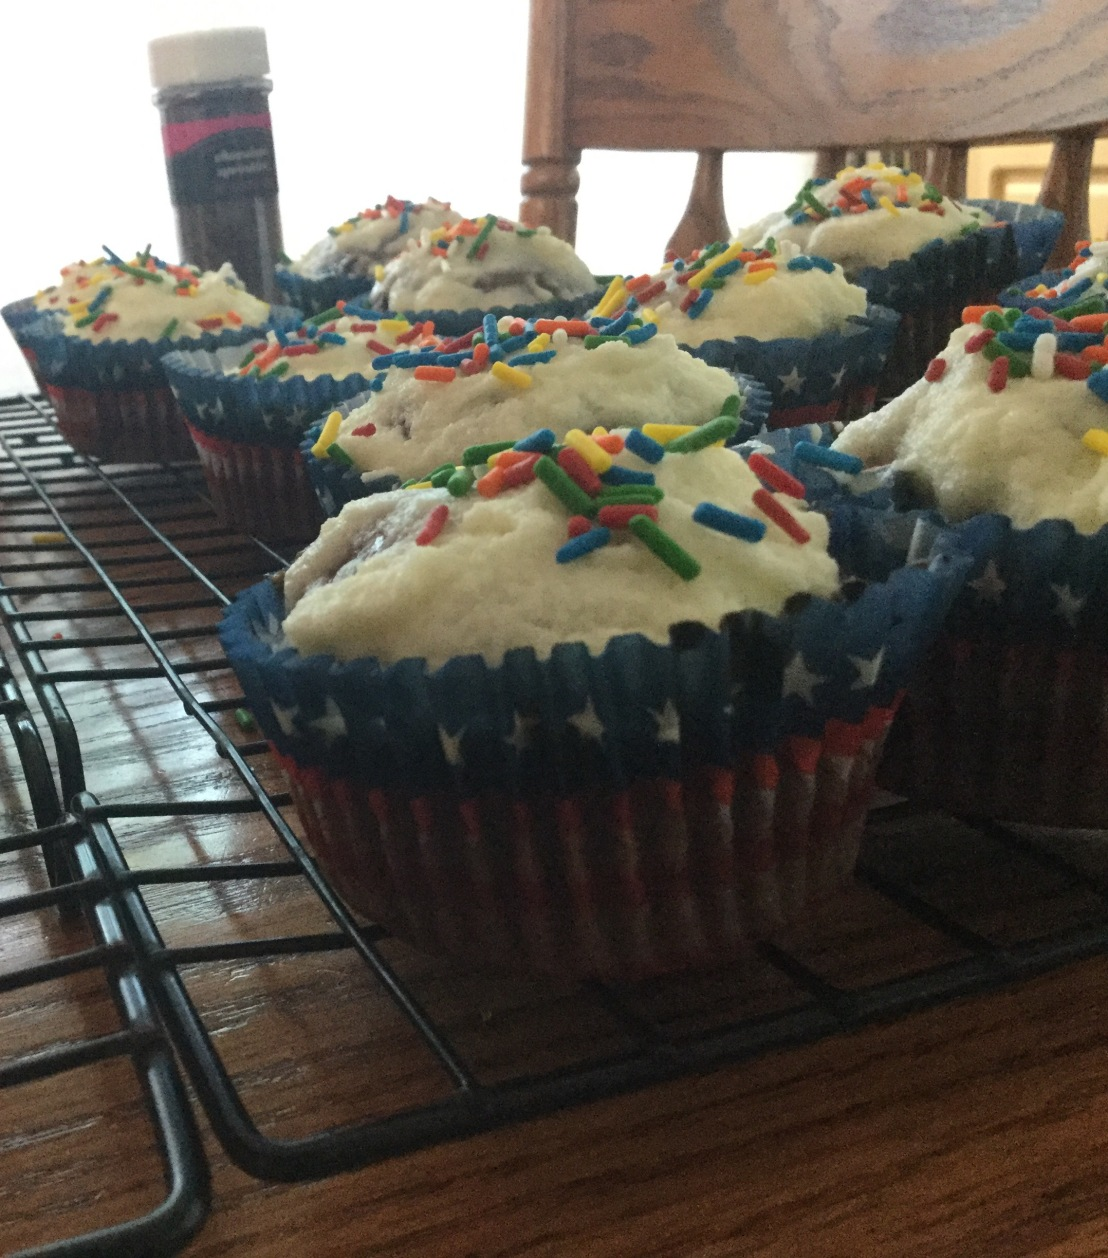 Baking Chronicle No. 11: Cupcakes